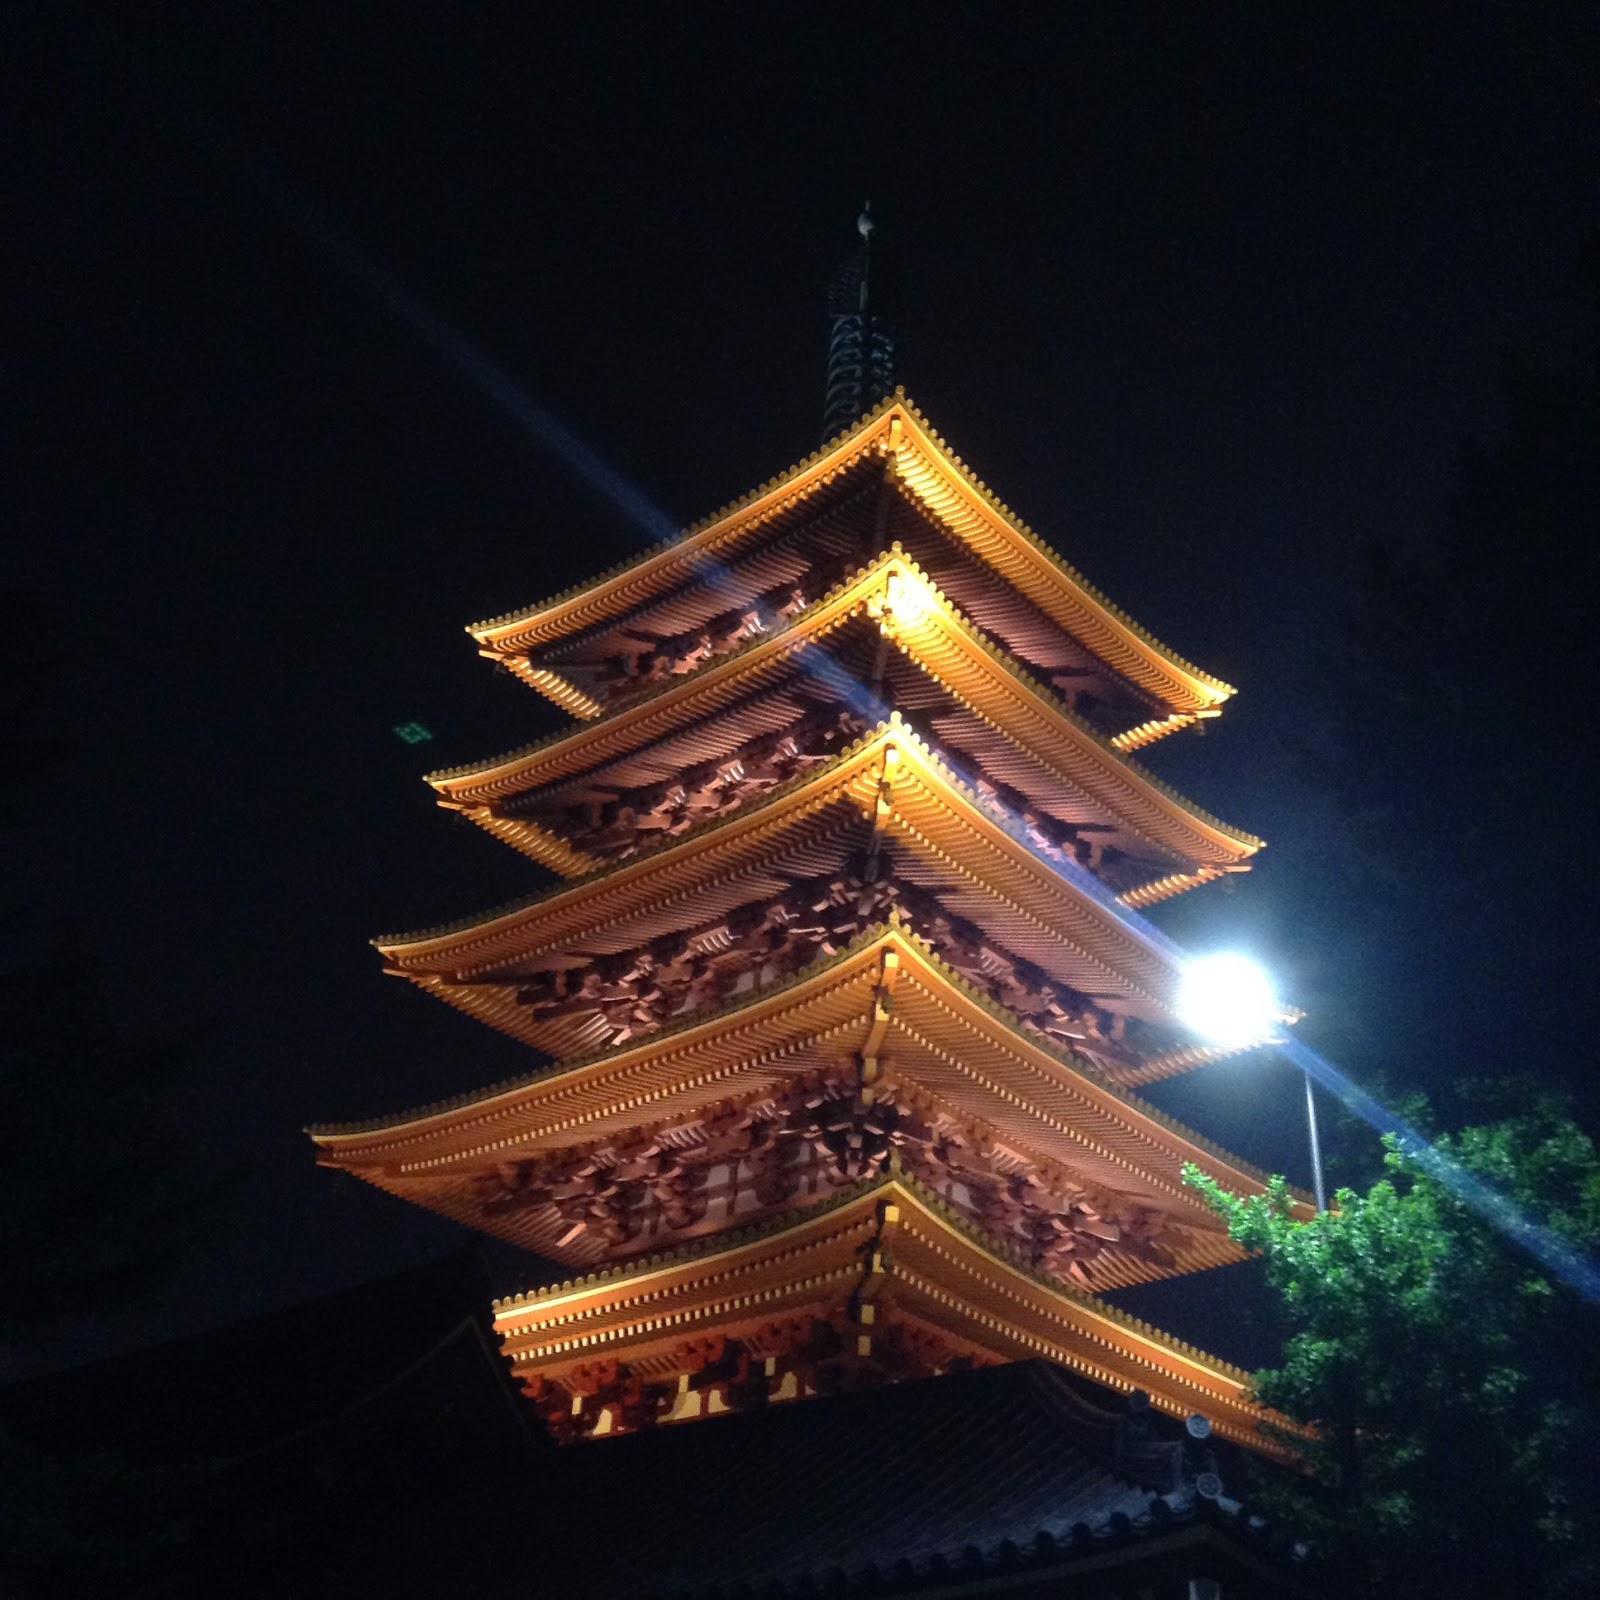 Sensouji pagoda at night